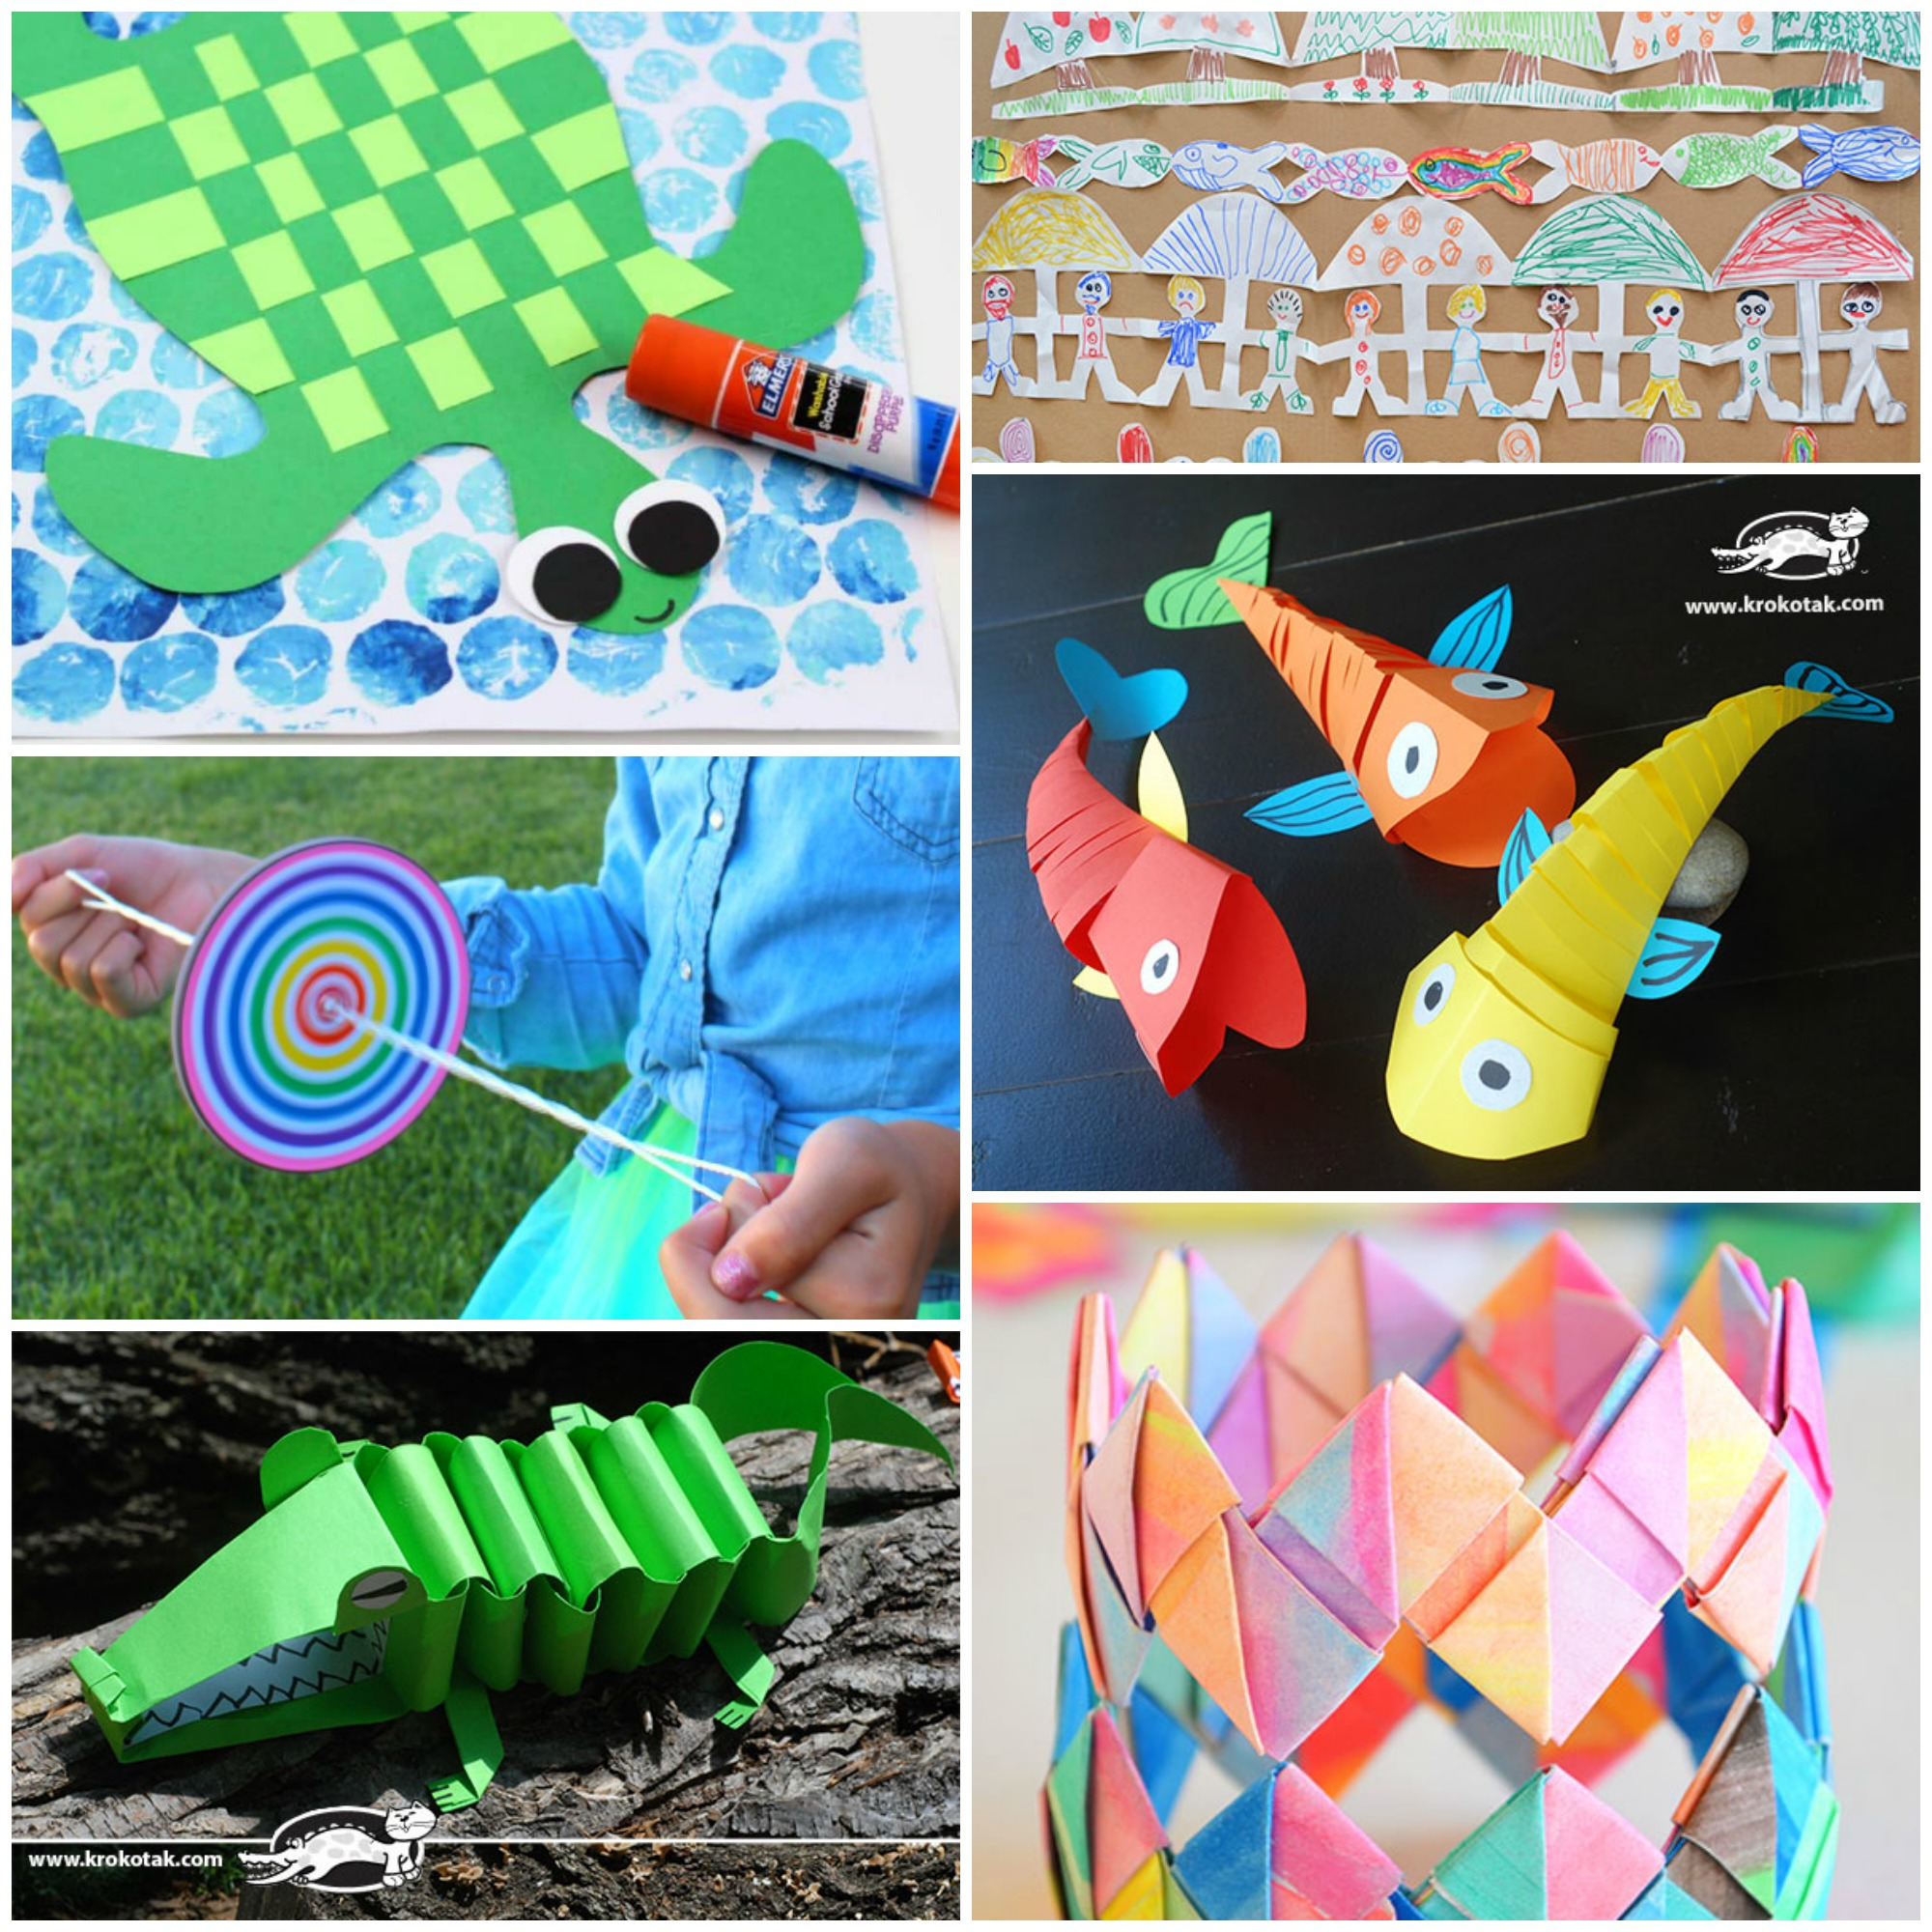 Paper Crafts For Kids 30 Fun Projects You Ll Want To Try Frugal Fun For Boys And Girls